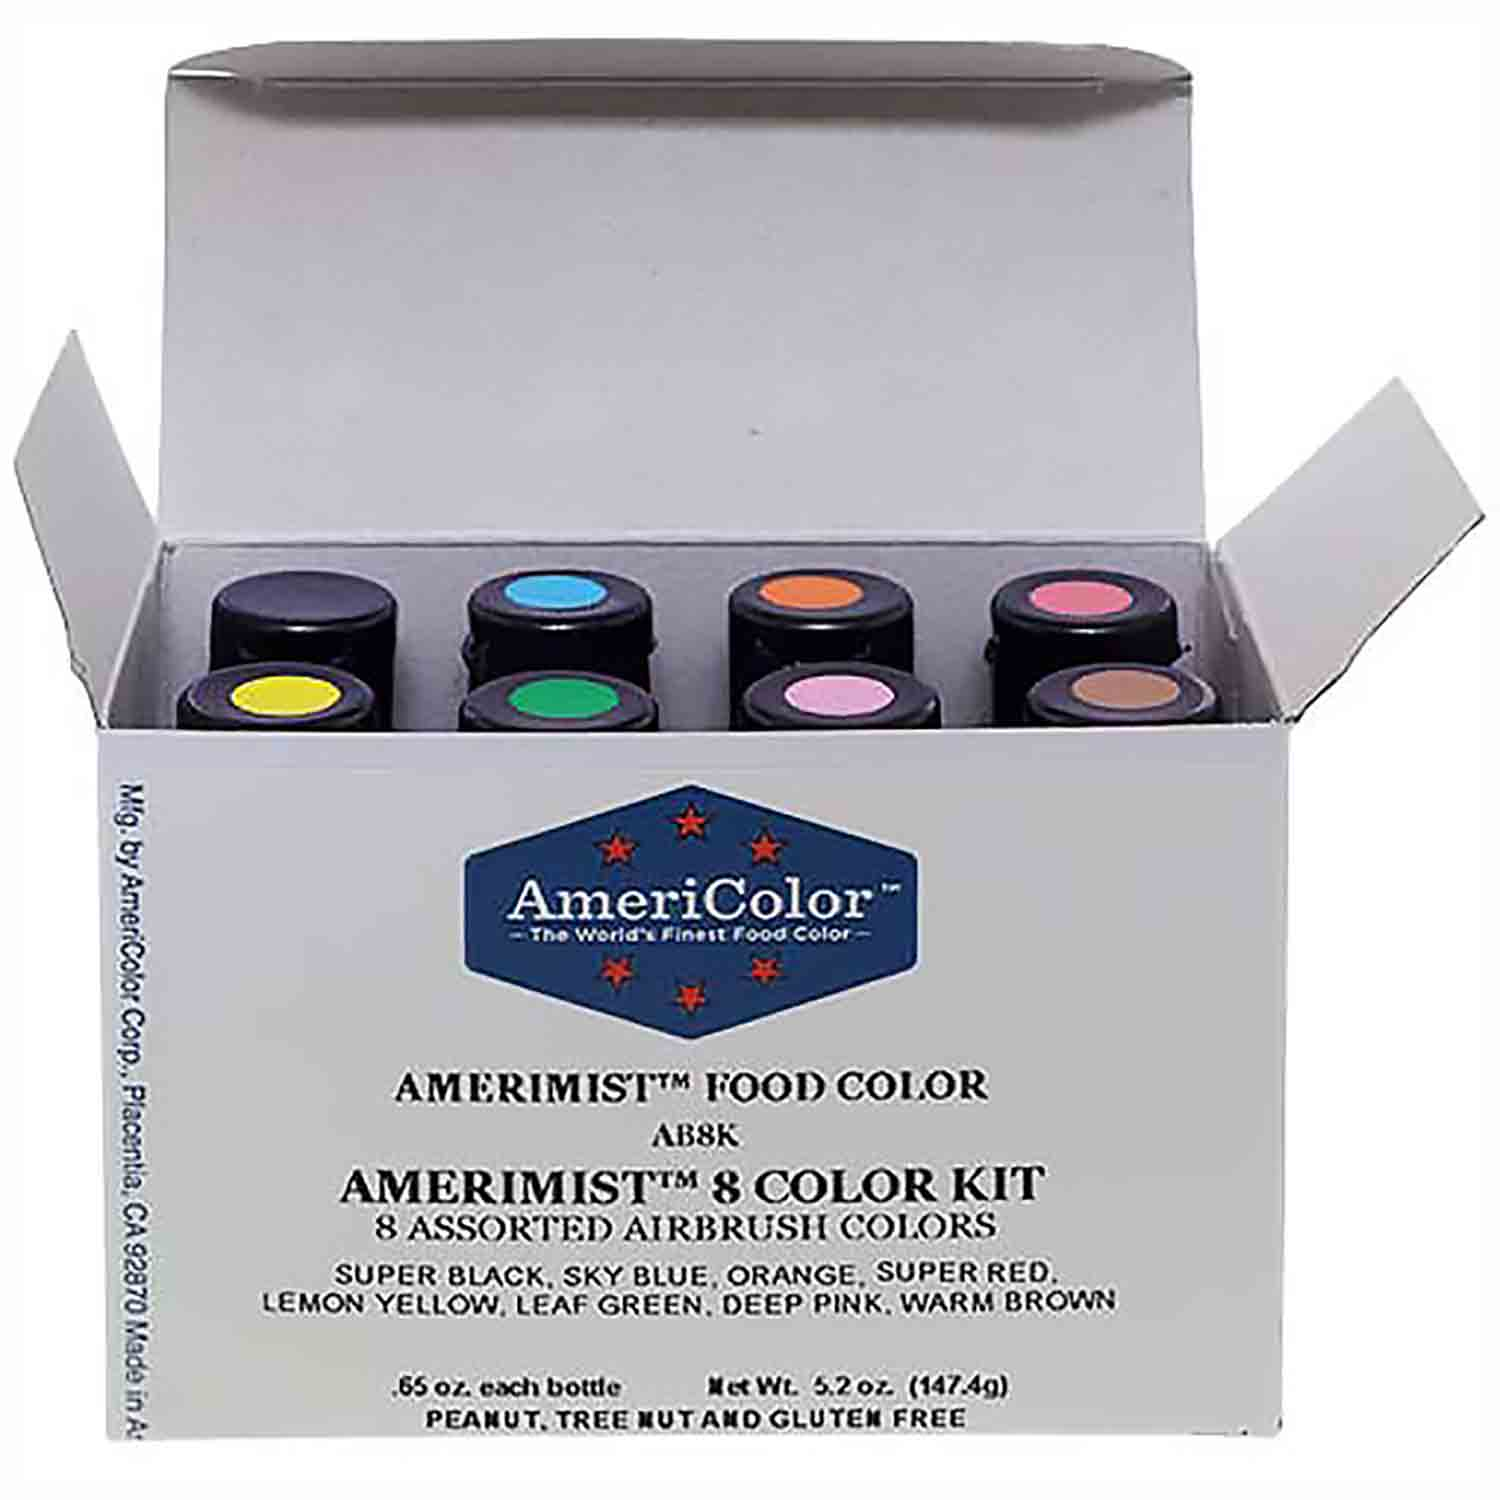 8 Color AmeriMist™ Air Brush Food Color Kit